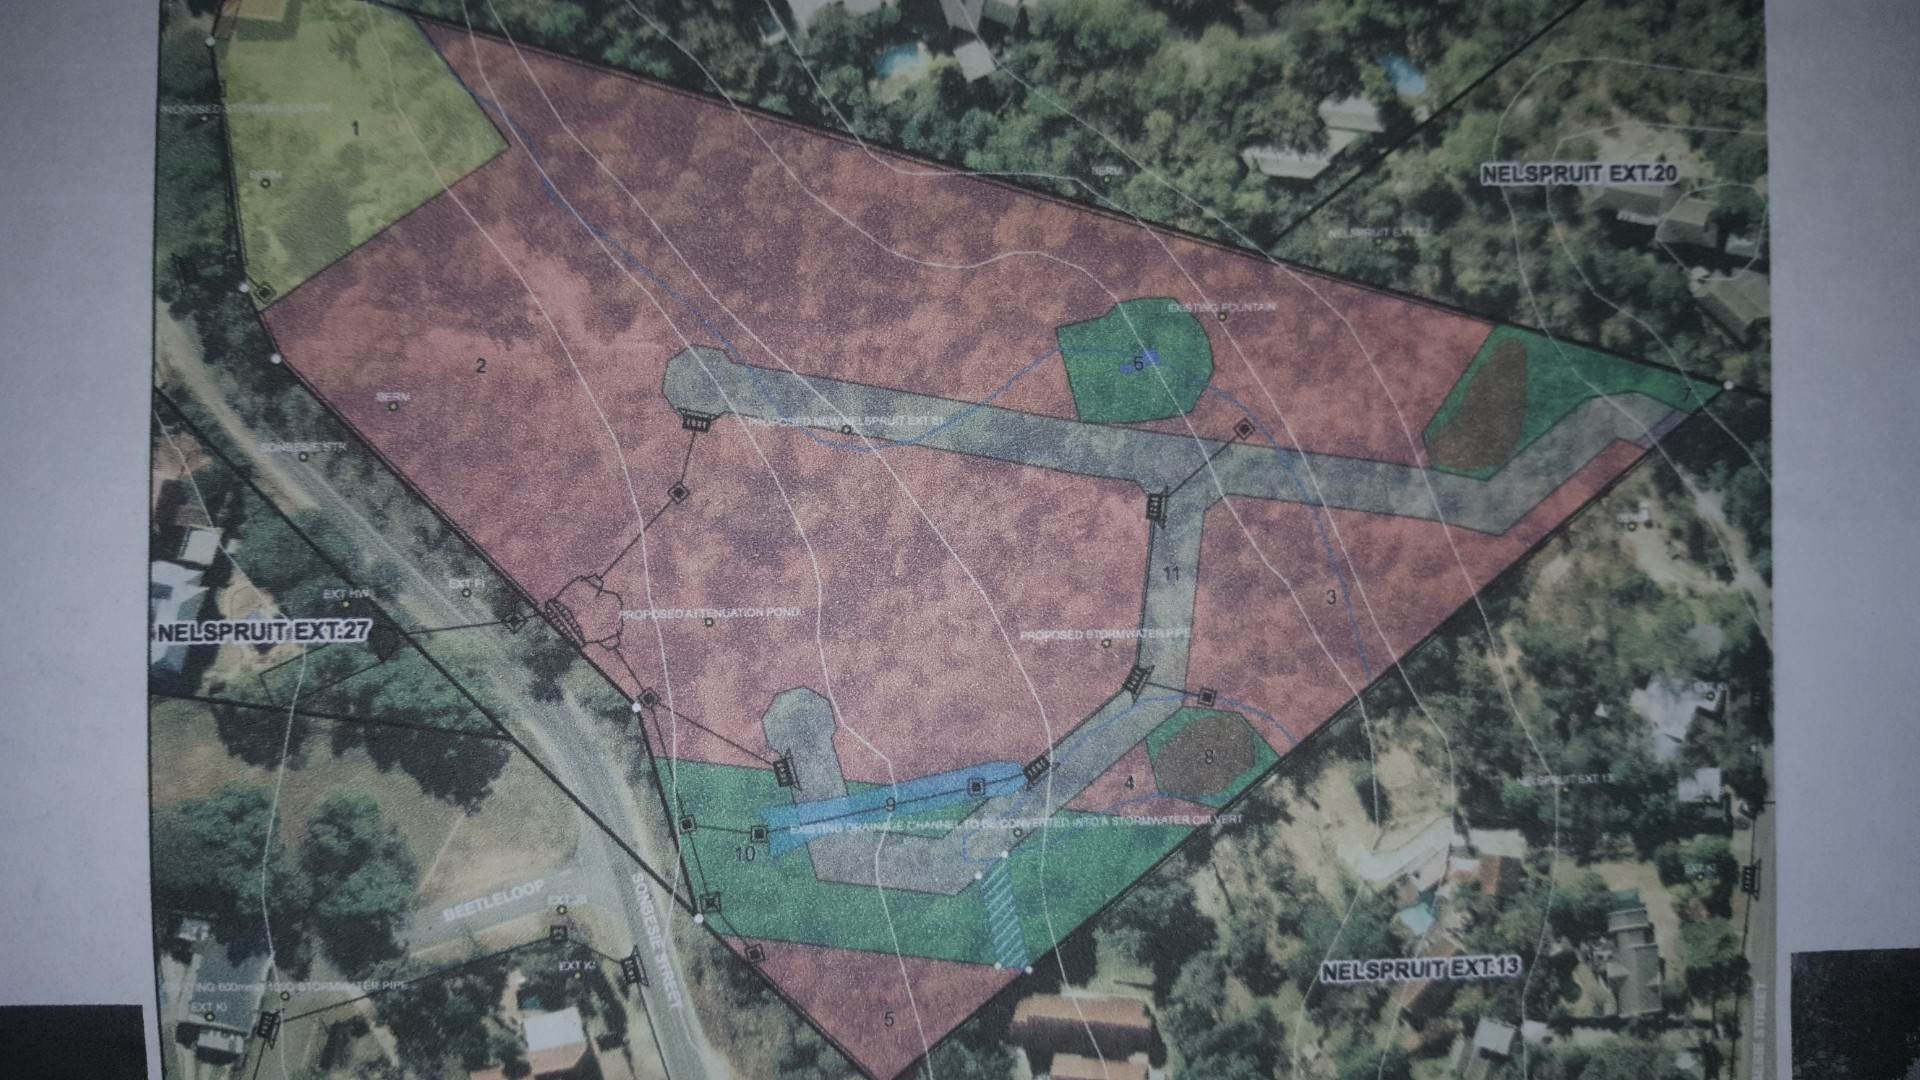 Vacant Land for Sale in Nelspruit